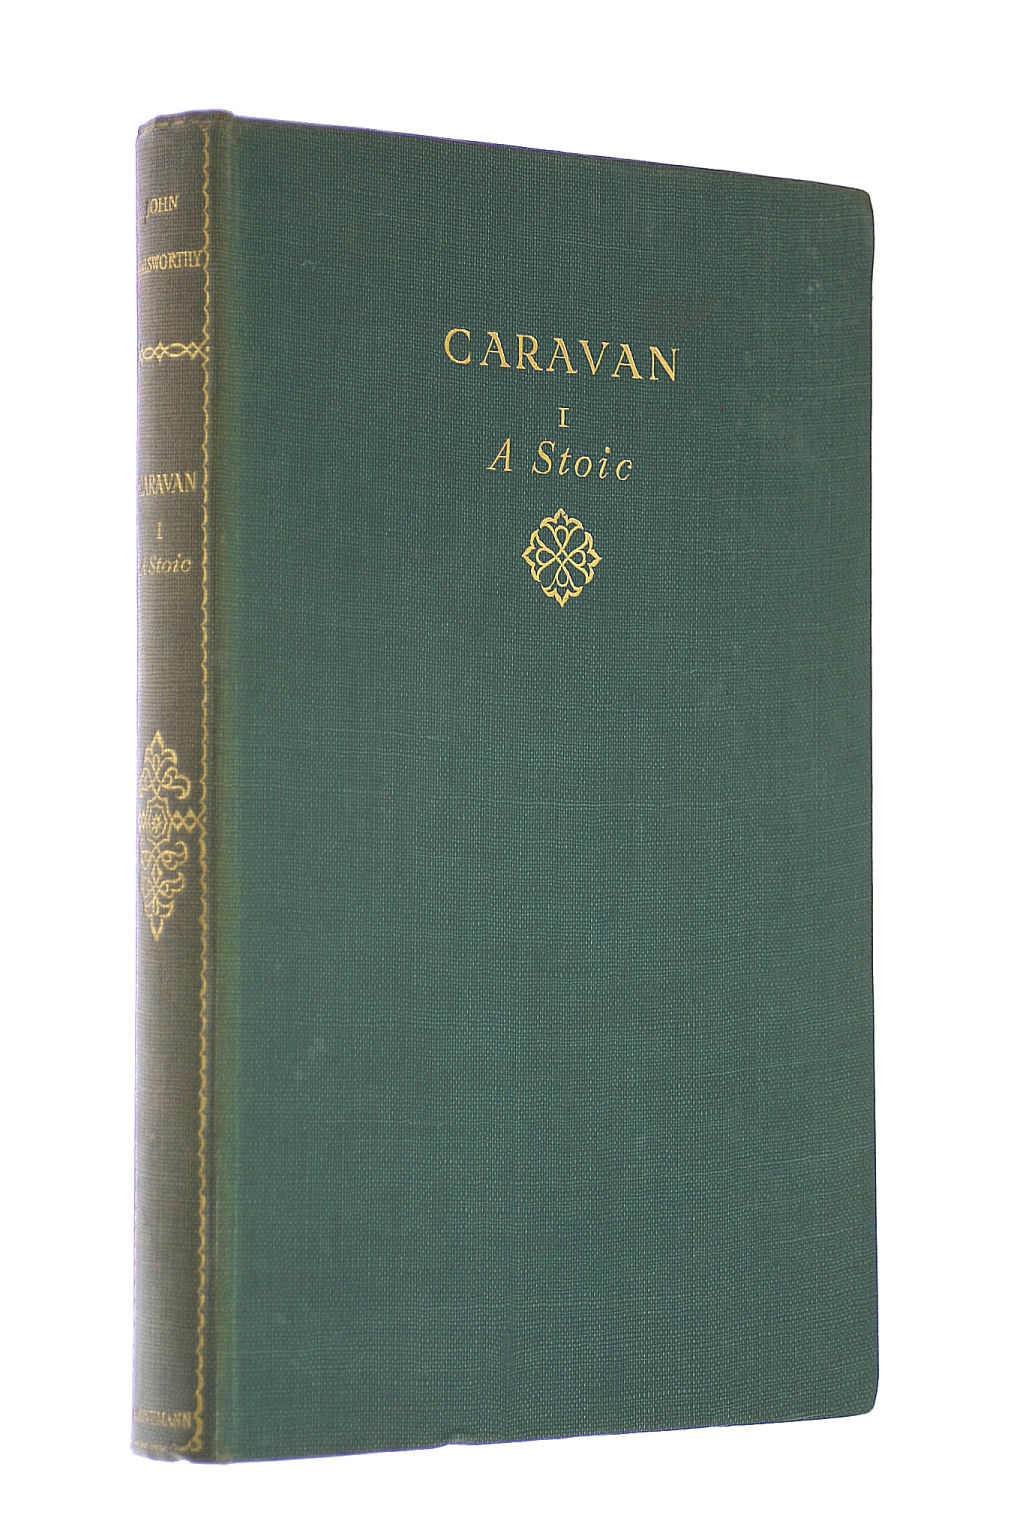 Image for Caravan, Volume I, A Stoic. The Works of John Galsworthy. Grove Edition. Volume 16